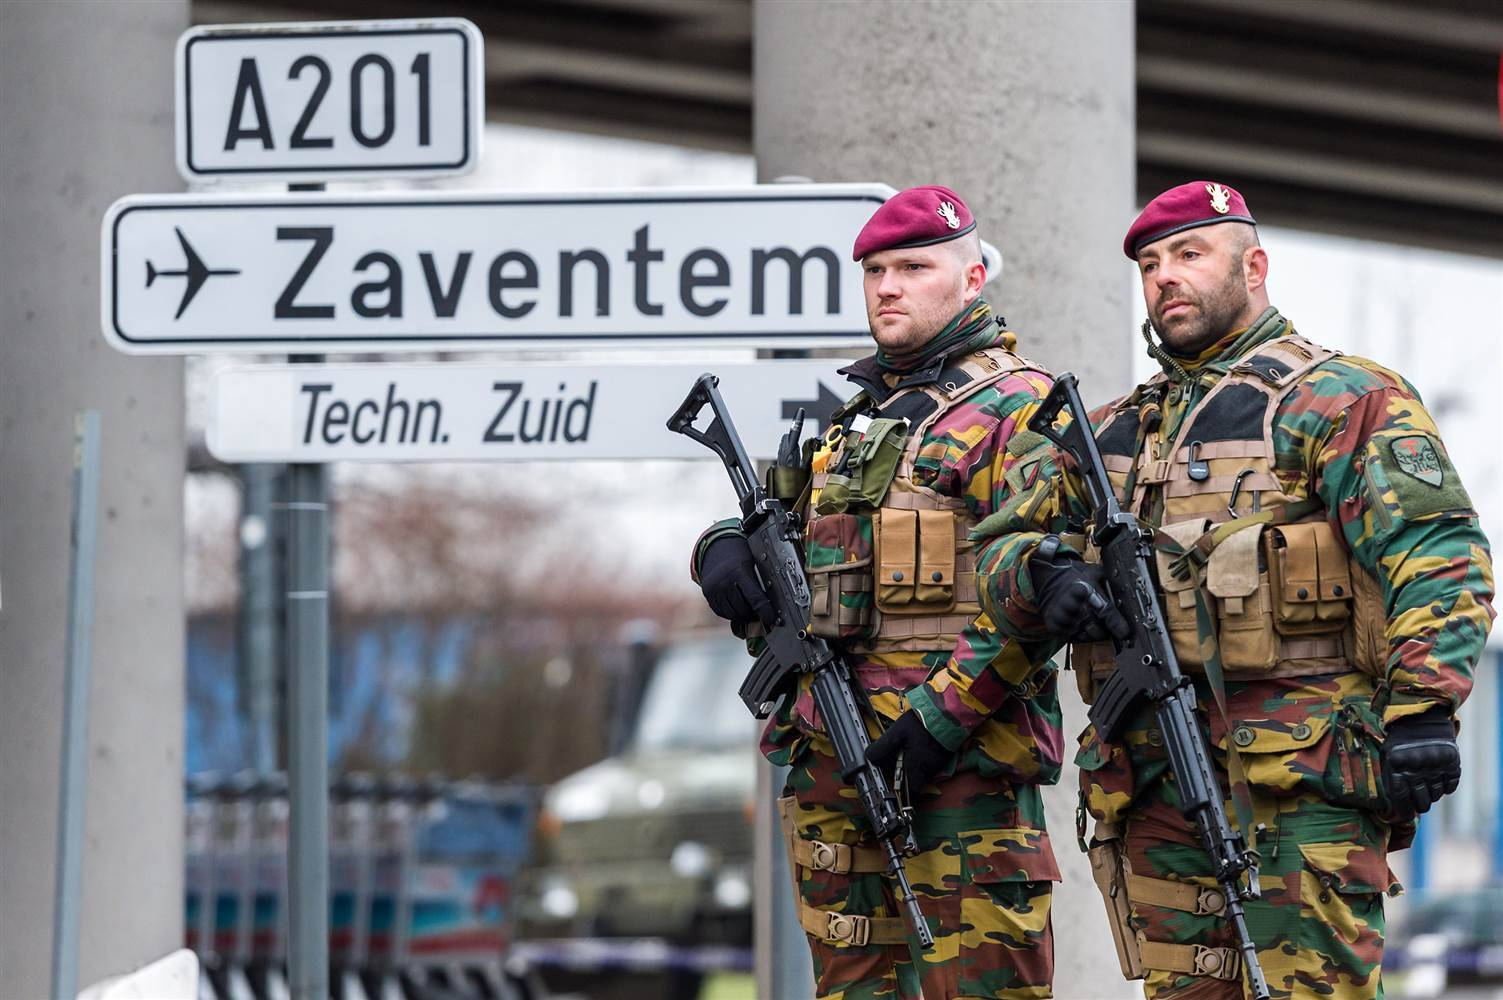 160323-brussels-airport-soldiers-939a_ac08f4757f784c6f1ab4d9fda98e7310.nbcnews-ux-2880-1000